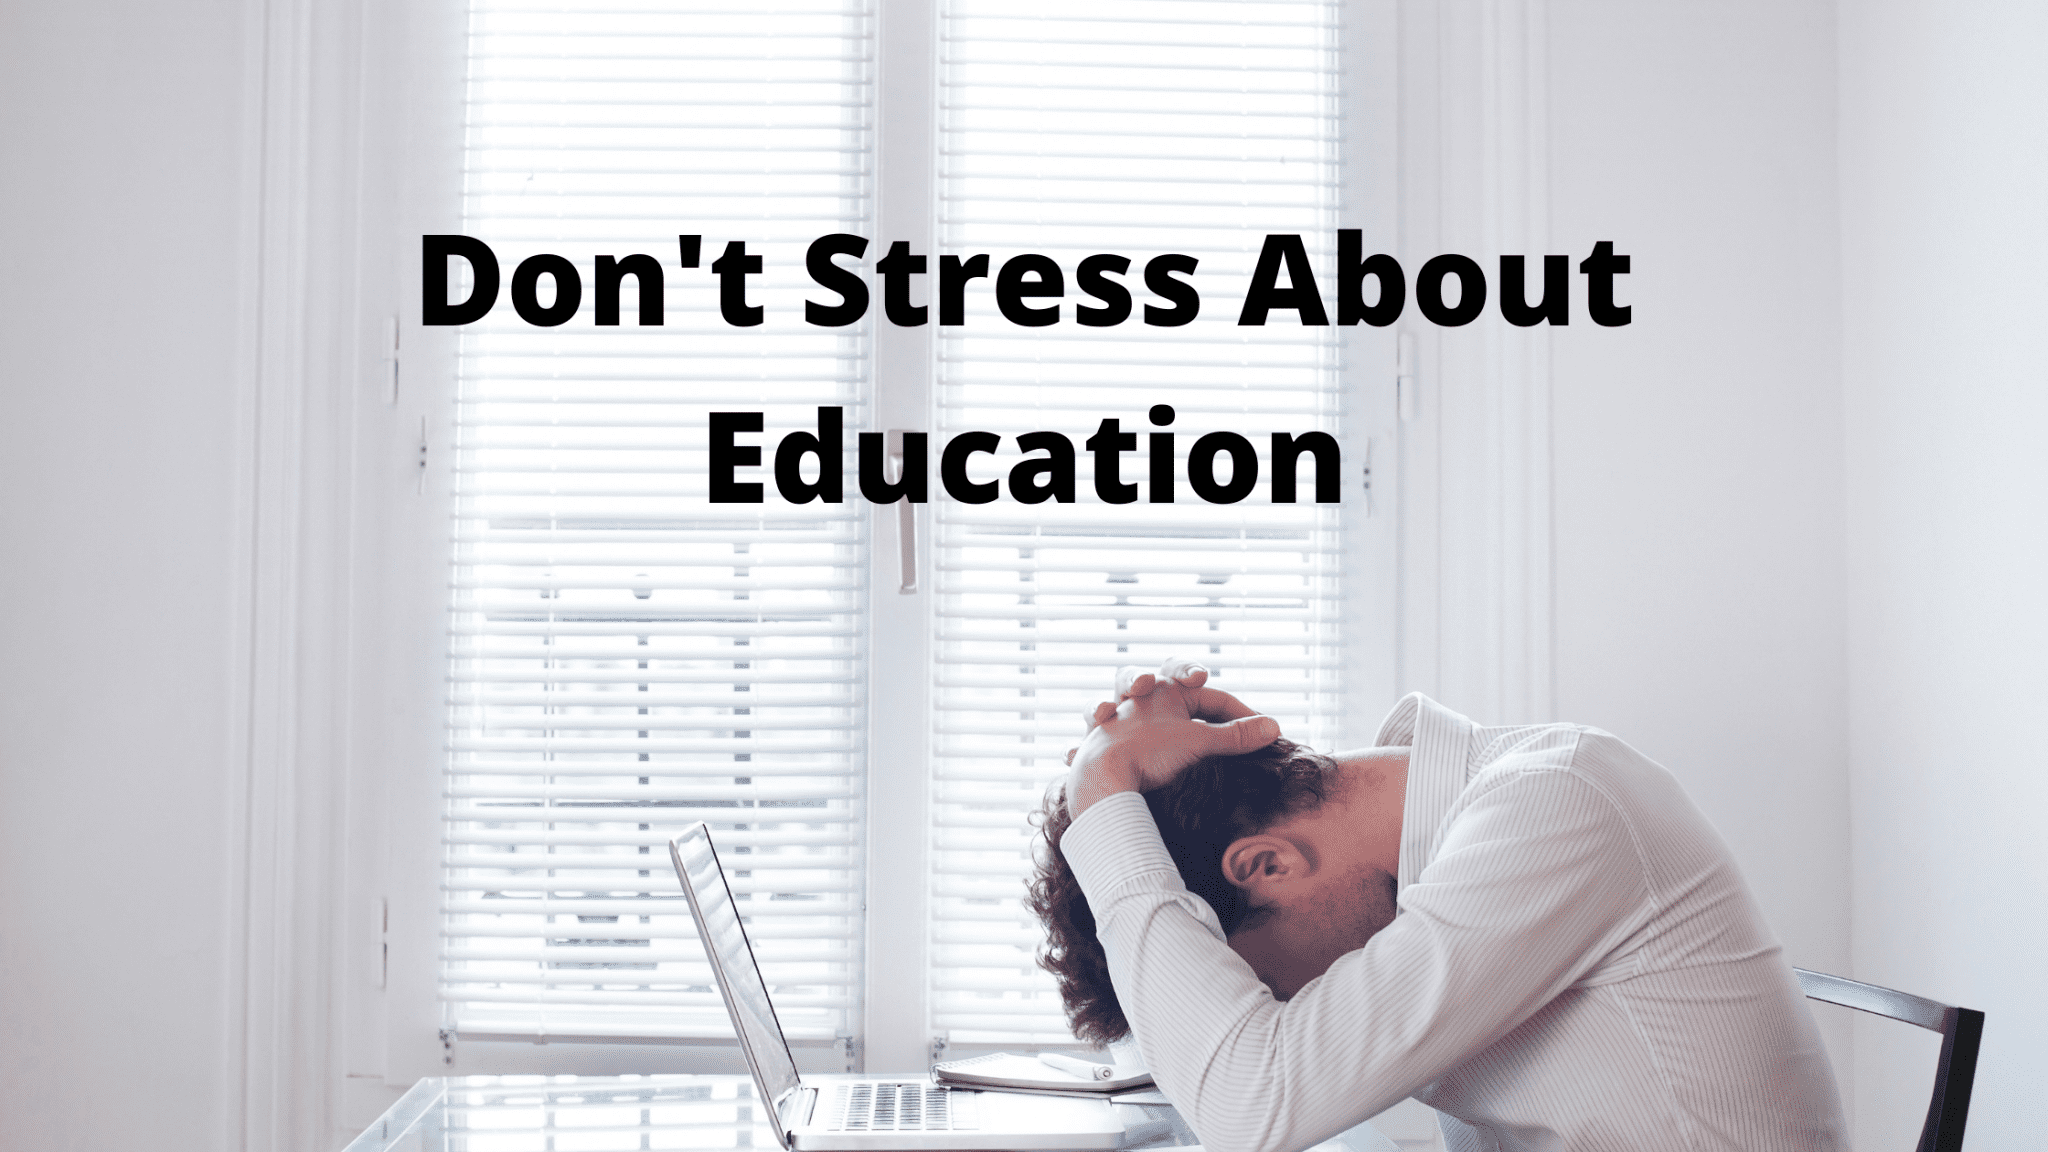 Don't Stress About Education